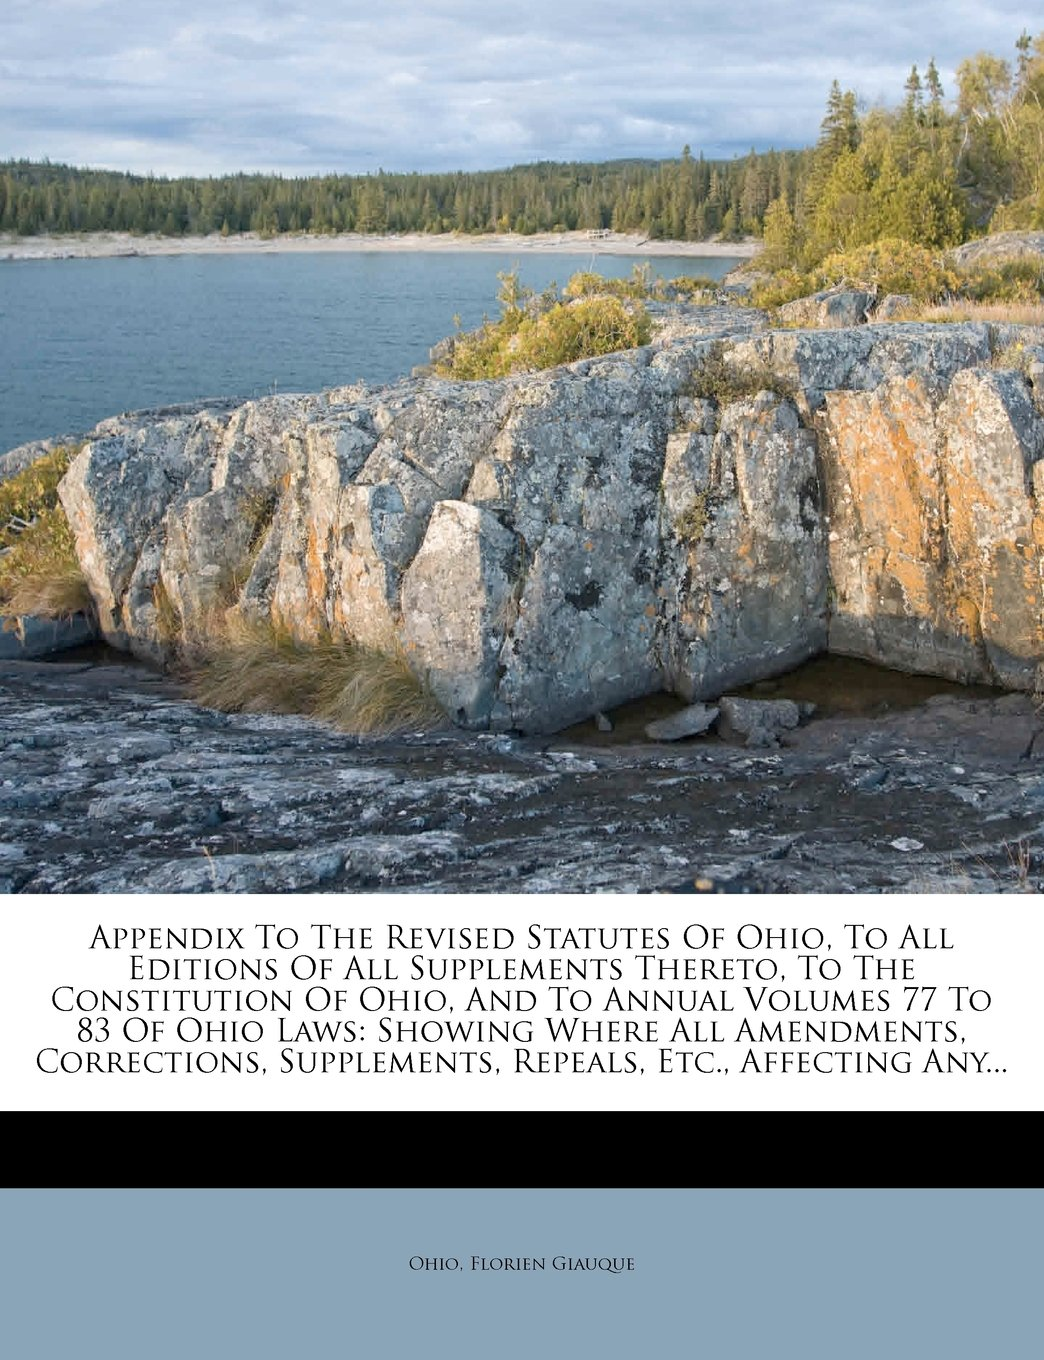 Download Appendix To The Revised Statutes Of Ohio, To All Editions Of All Supplements Thereto, To The Constitution Of Ohio, And To Annual Volumes 77 To 83 Of ... Supplements, Repeals, Etc., Affecting Any... pdf epub